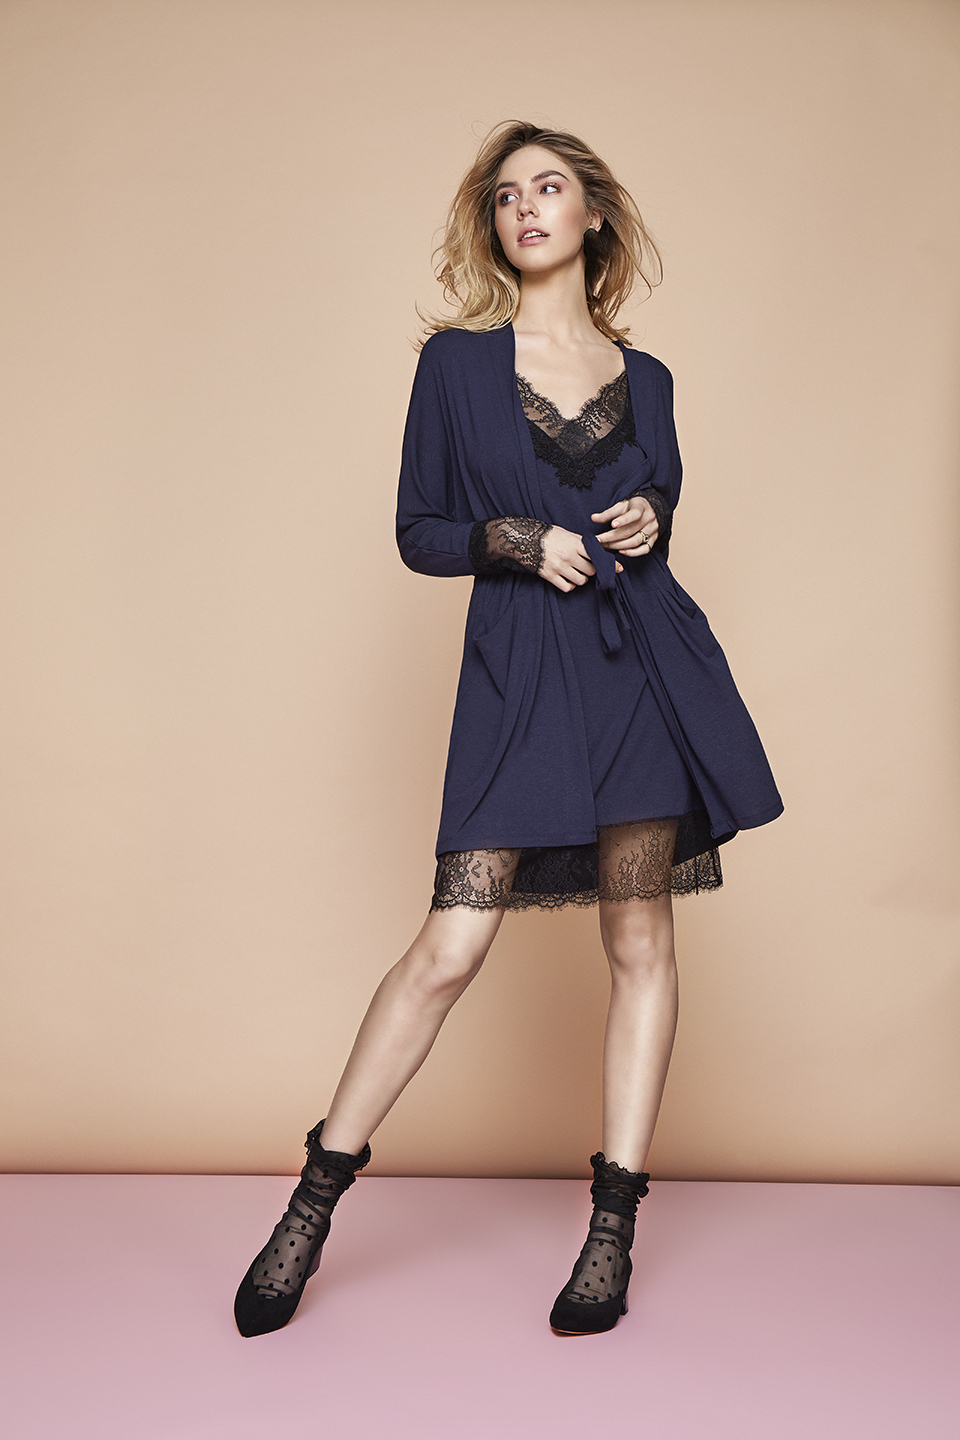 Night Moon OZ105 Chemise<br />03 Dark Blue, 15 Beige, 67 Antique Rose<br />Fire OZ107 Vestaglia<br />03 Dark Blue, 15 Beige, 67 Antique Rose